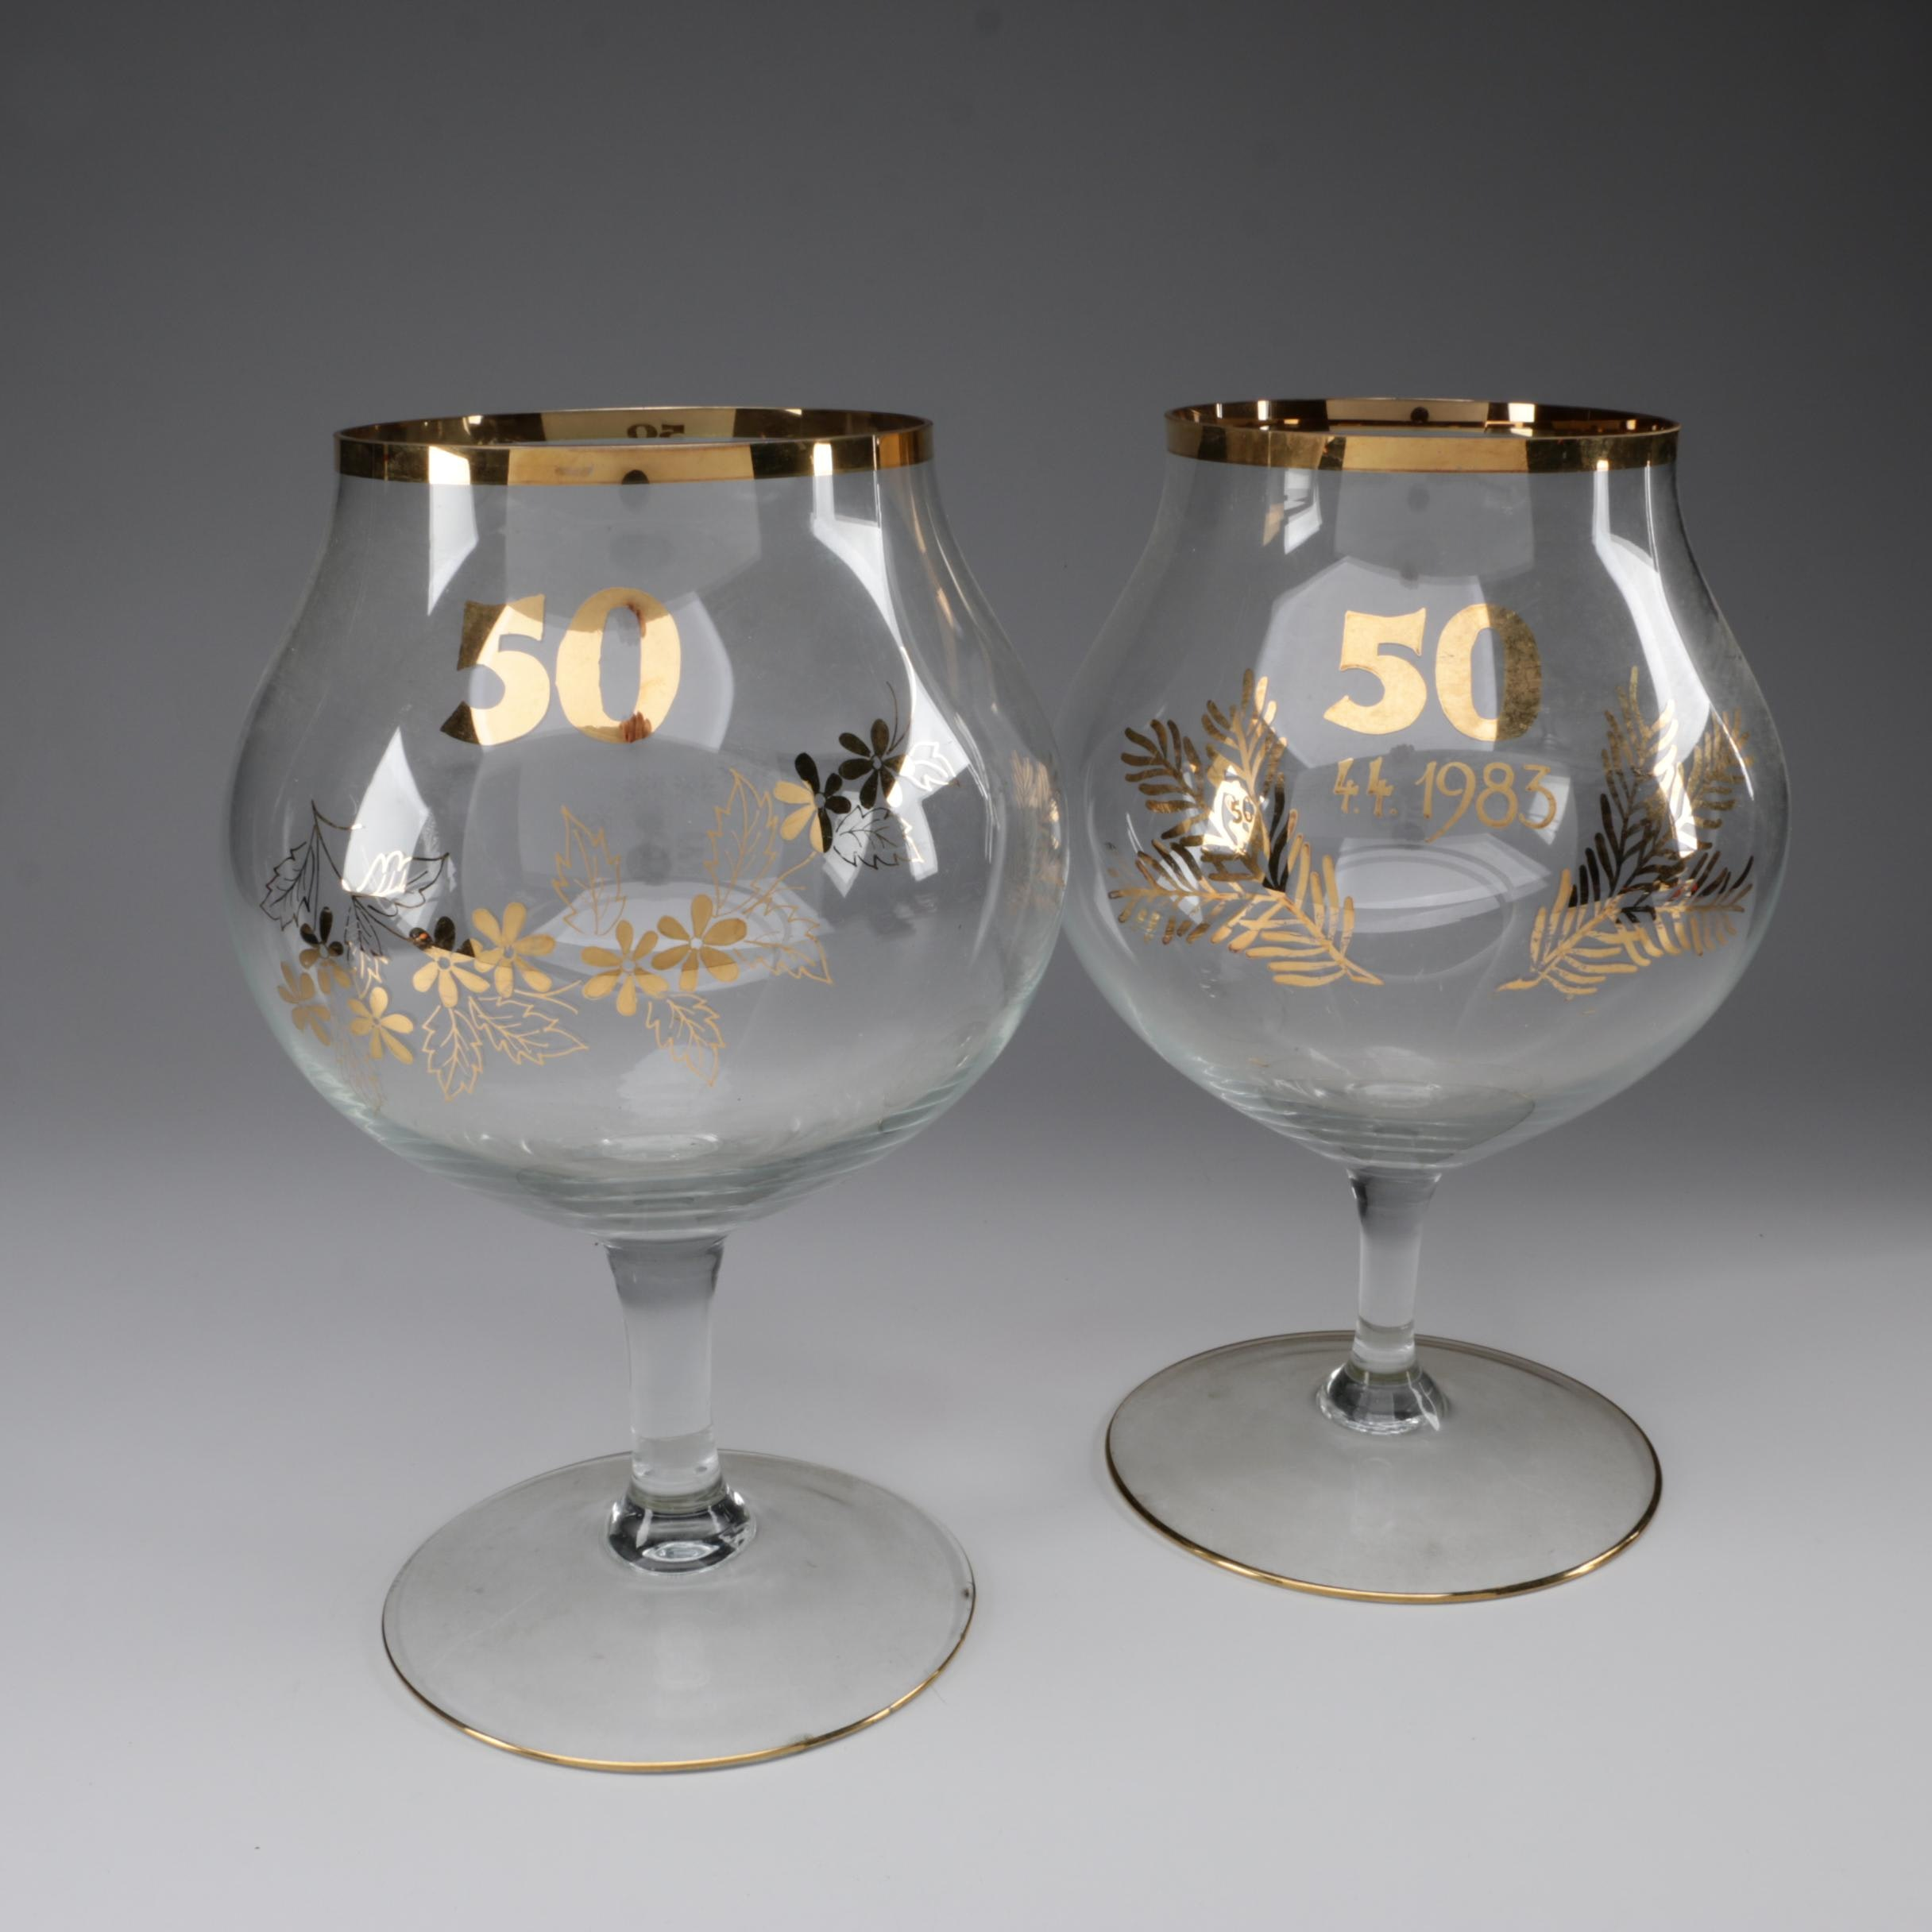 Pair of Oversized 50th Anniversary Goblets, 1983